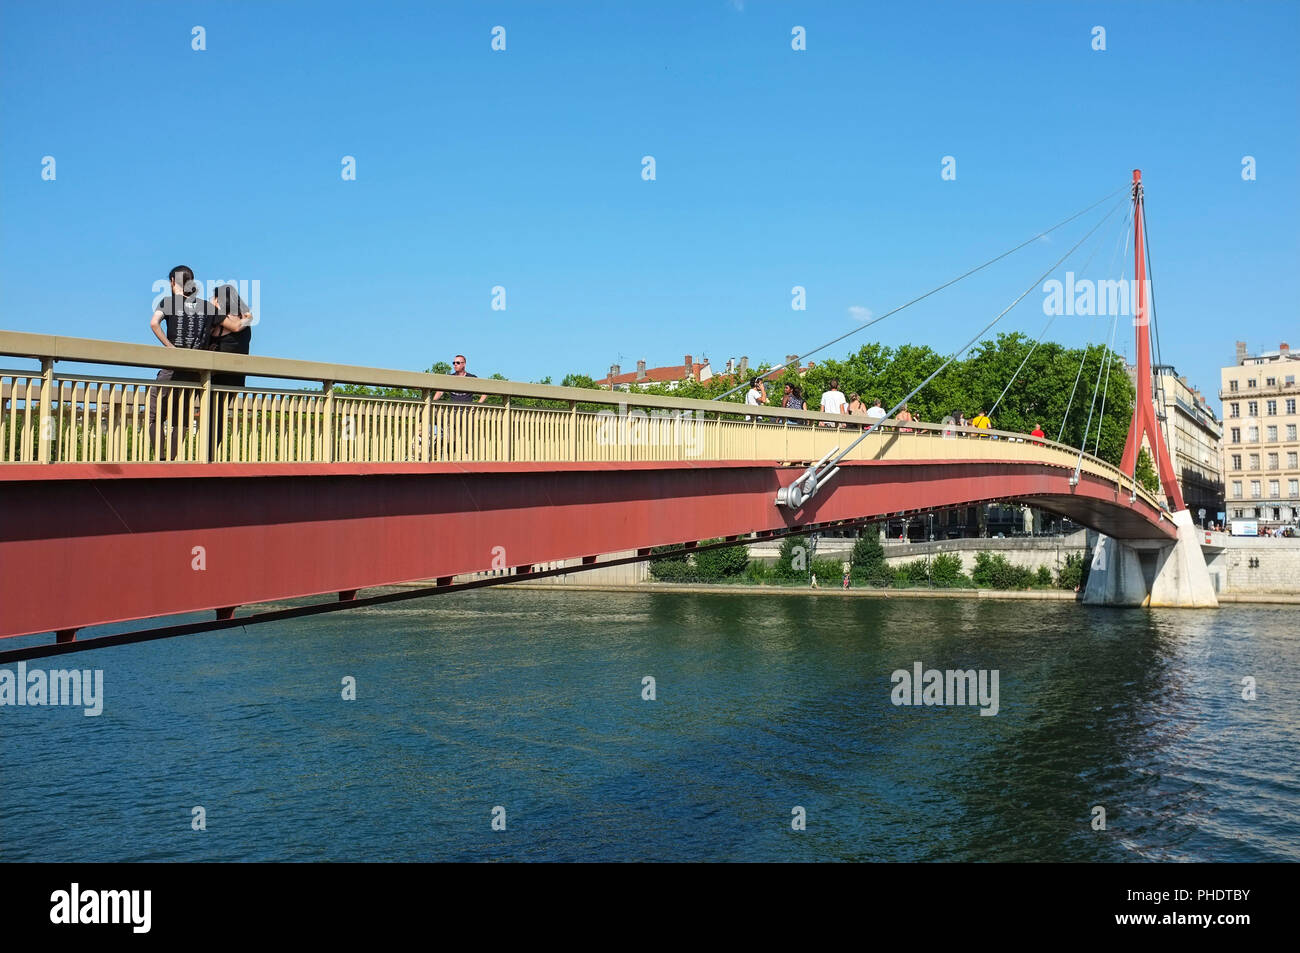 passerelle-du-palais-de-justice-gateway-courthouse-over-the-saone-river-in-lyon-france-PHDTBY.jpg